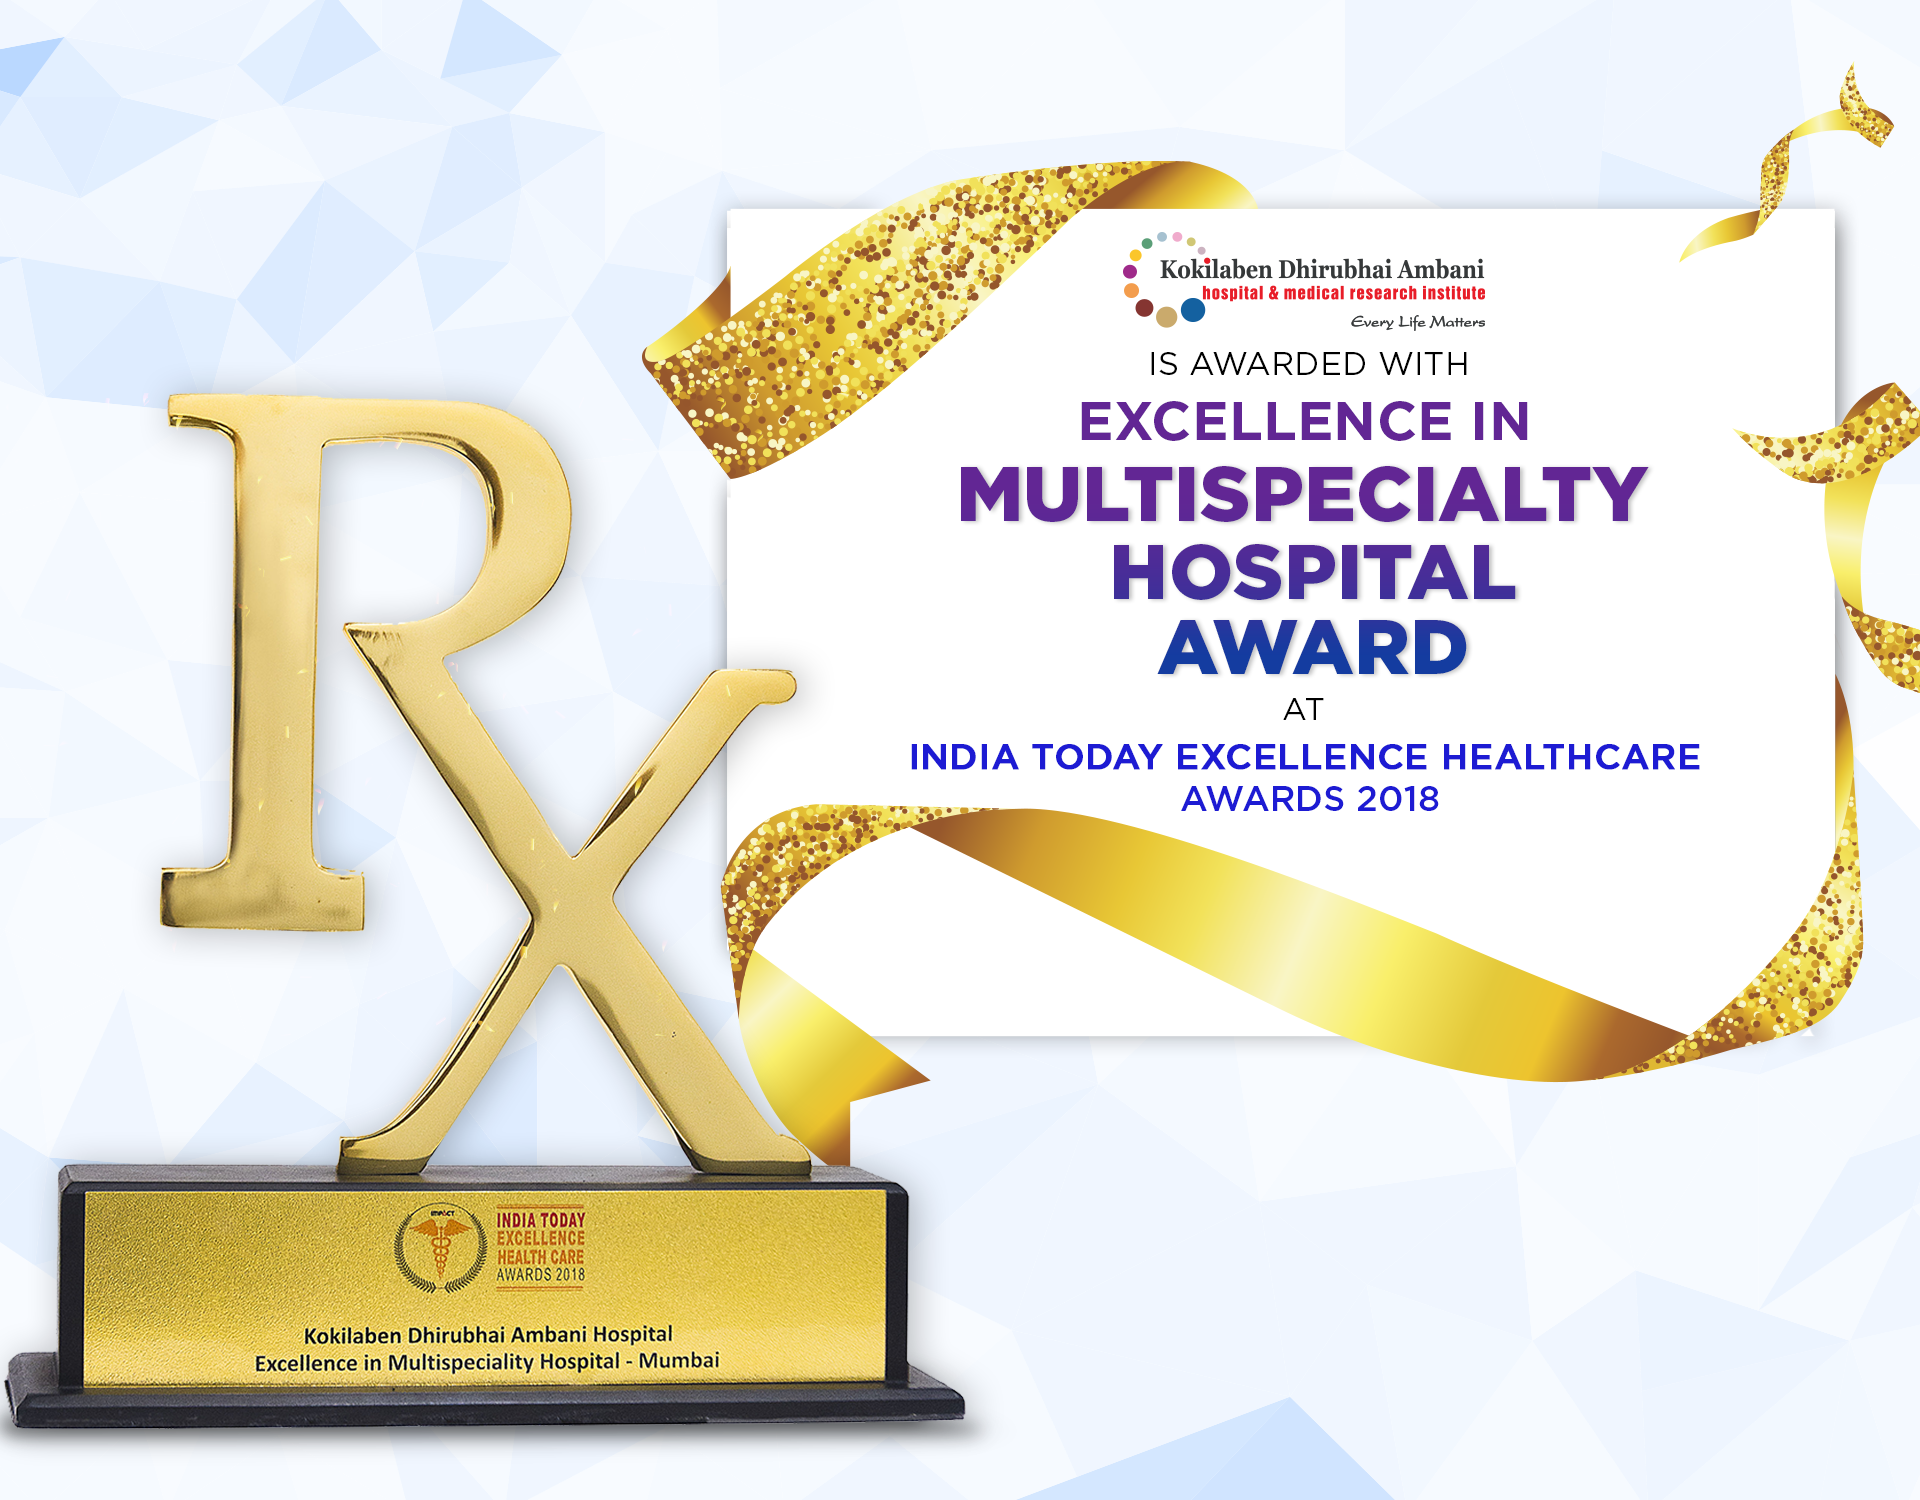 Kokilaben Dhirubhai Ambani Hospital - Excellence In Multispecialty Hospital Award